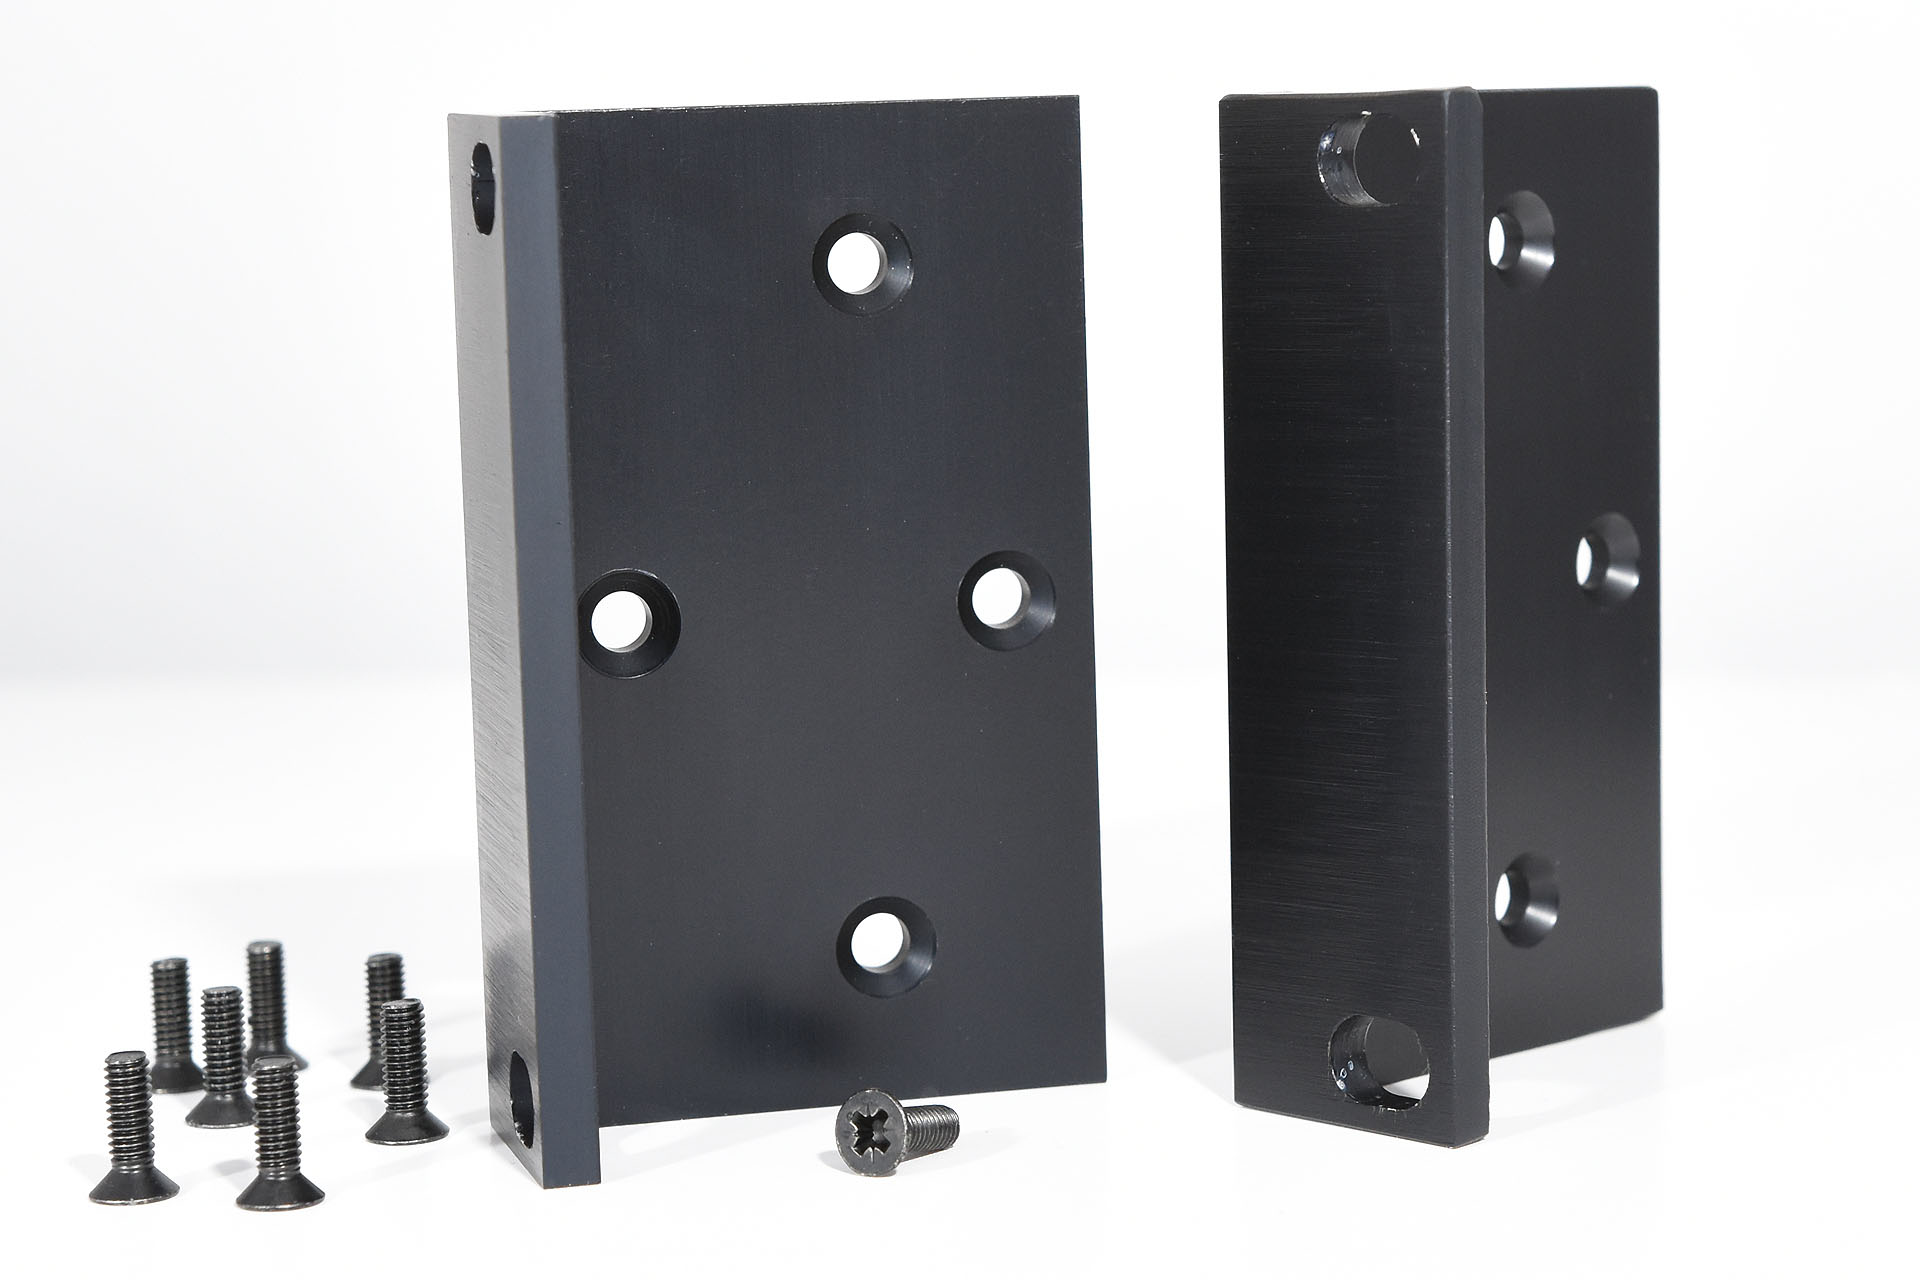 RE-MKS-70 replacement rack-ears for the Roland MKS-70 at Plasma Music